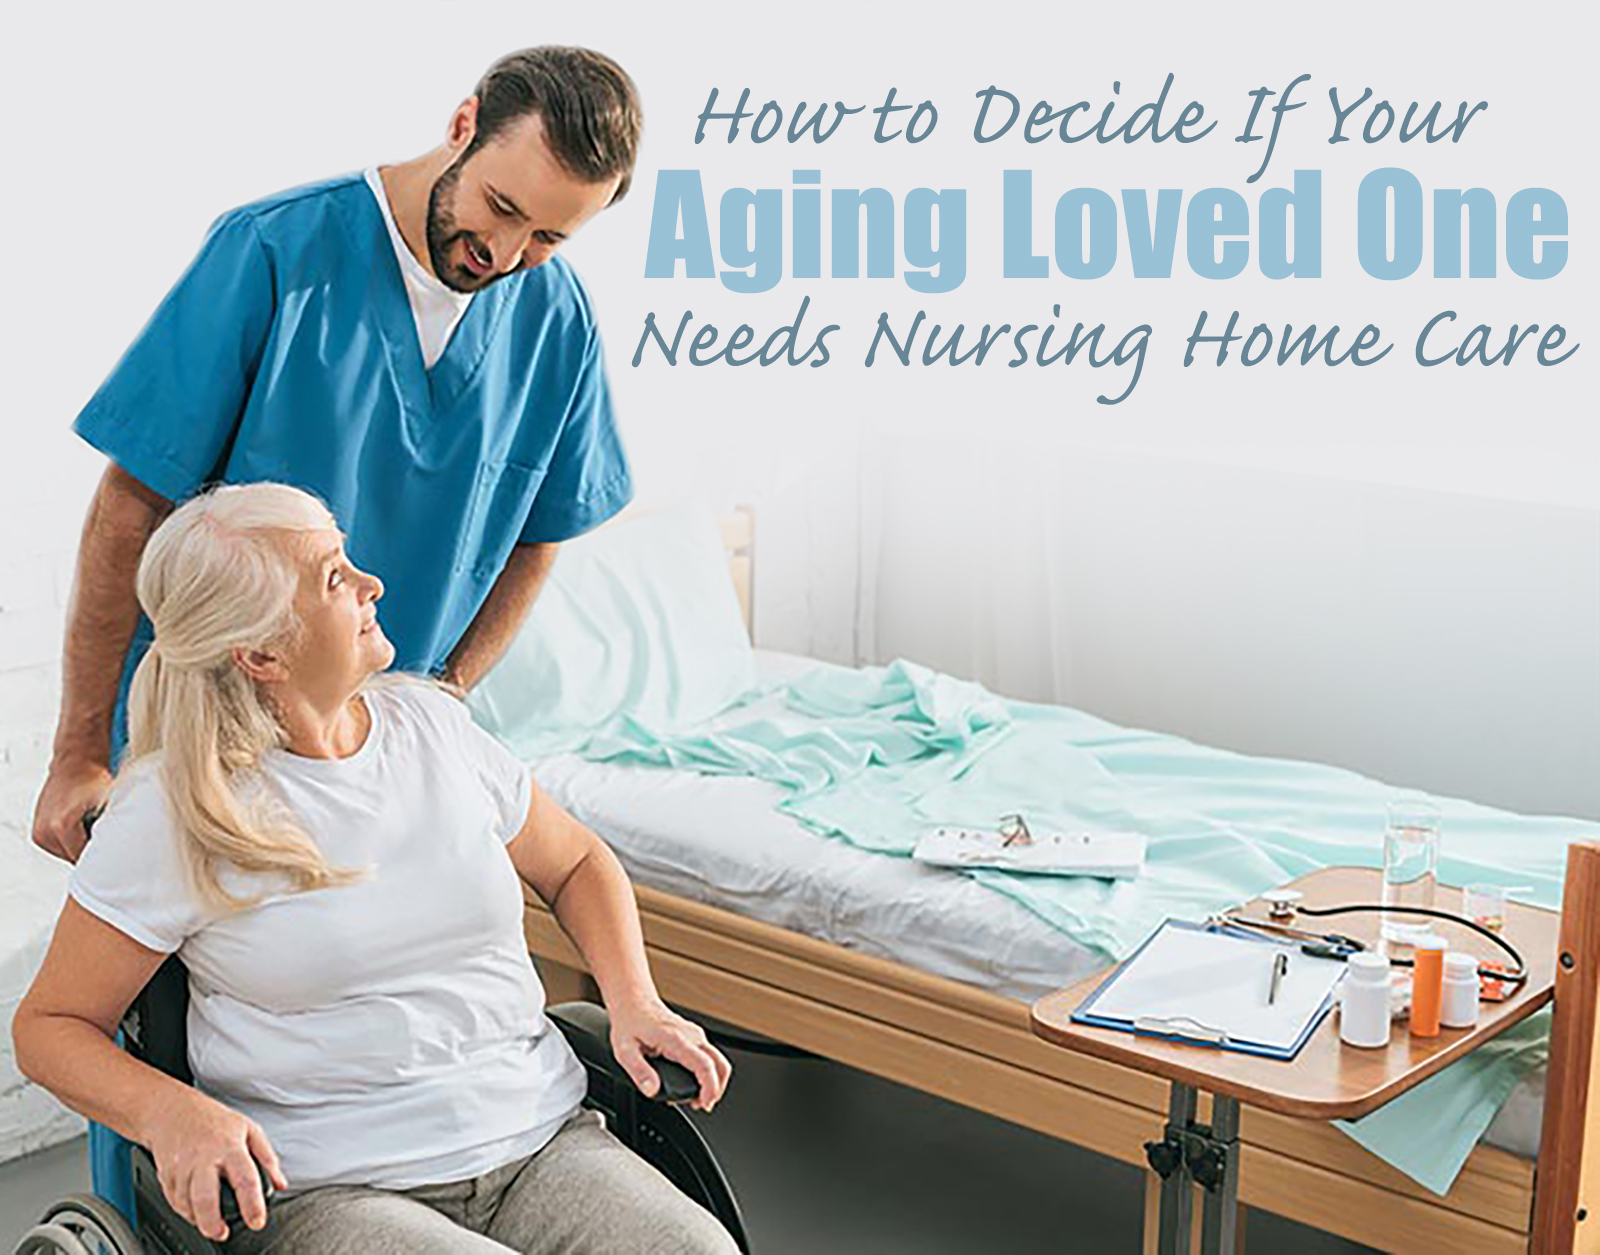 Nursing-Homes-Care.jpg